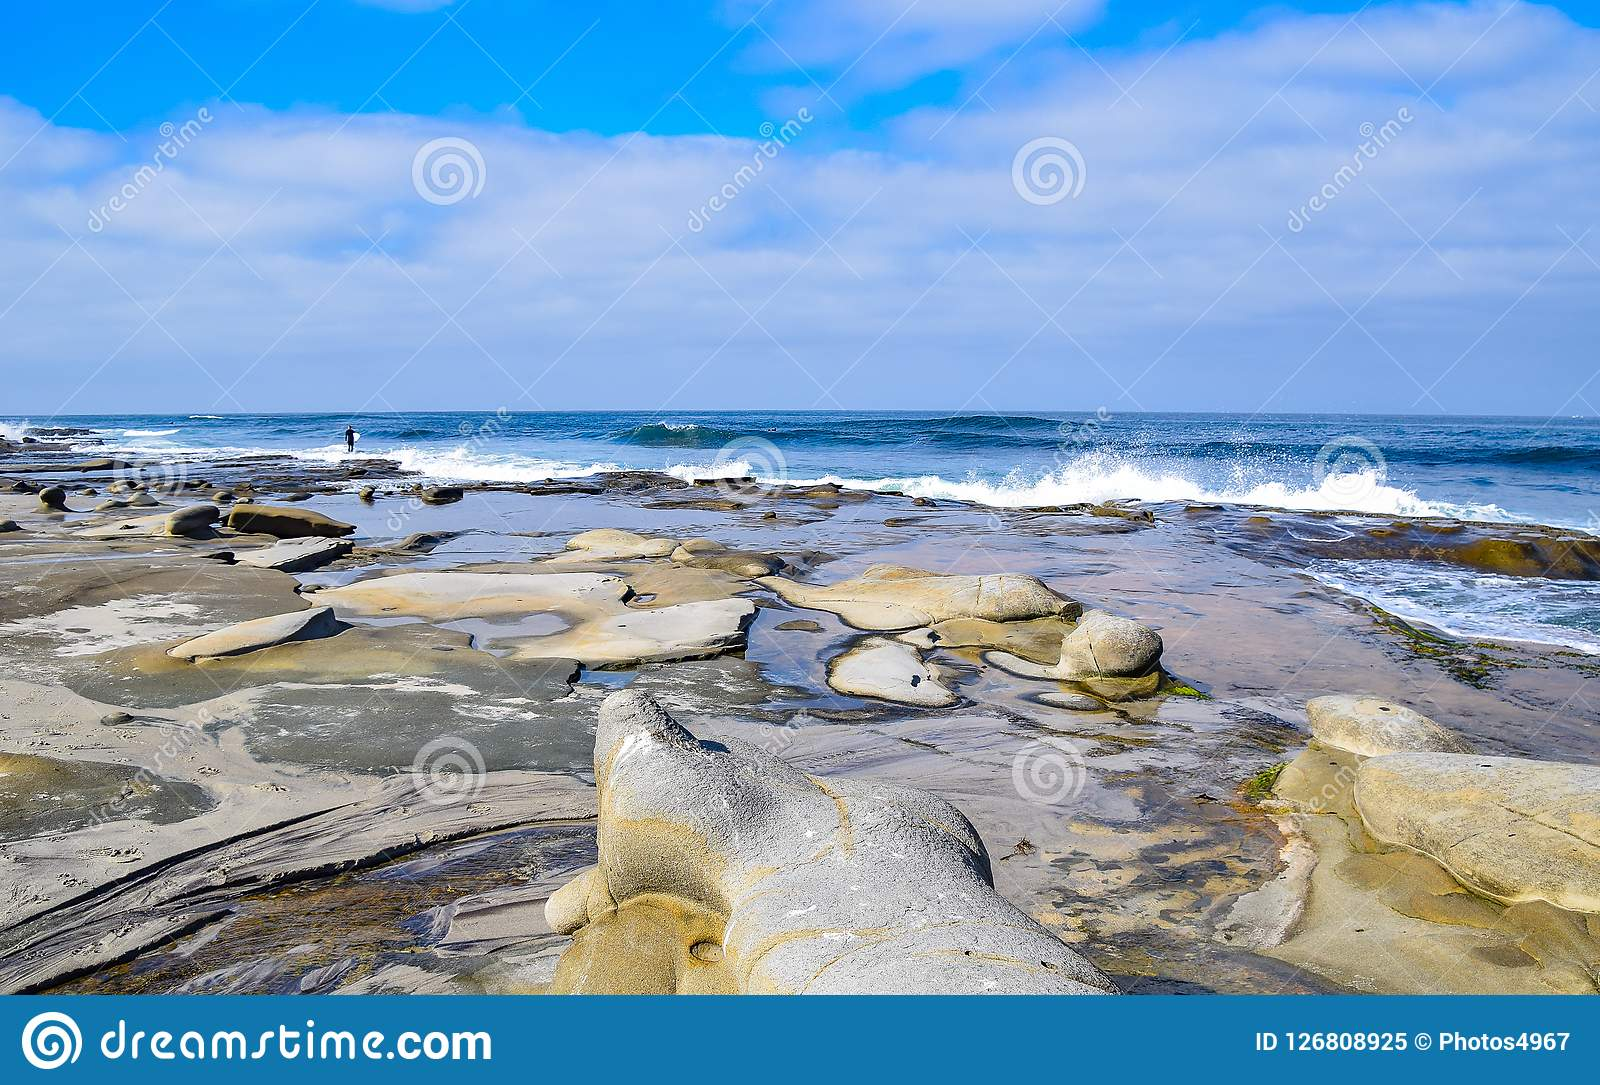 Sun, Surf, and Sculptured Cliffs. There are fascinating natural rock sculptures along the coast of La Jolla, CA Royalty Free Stock Photo